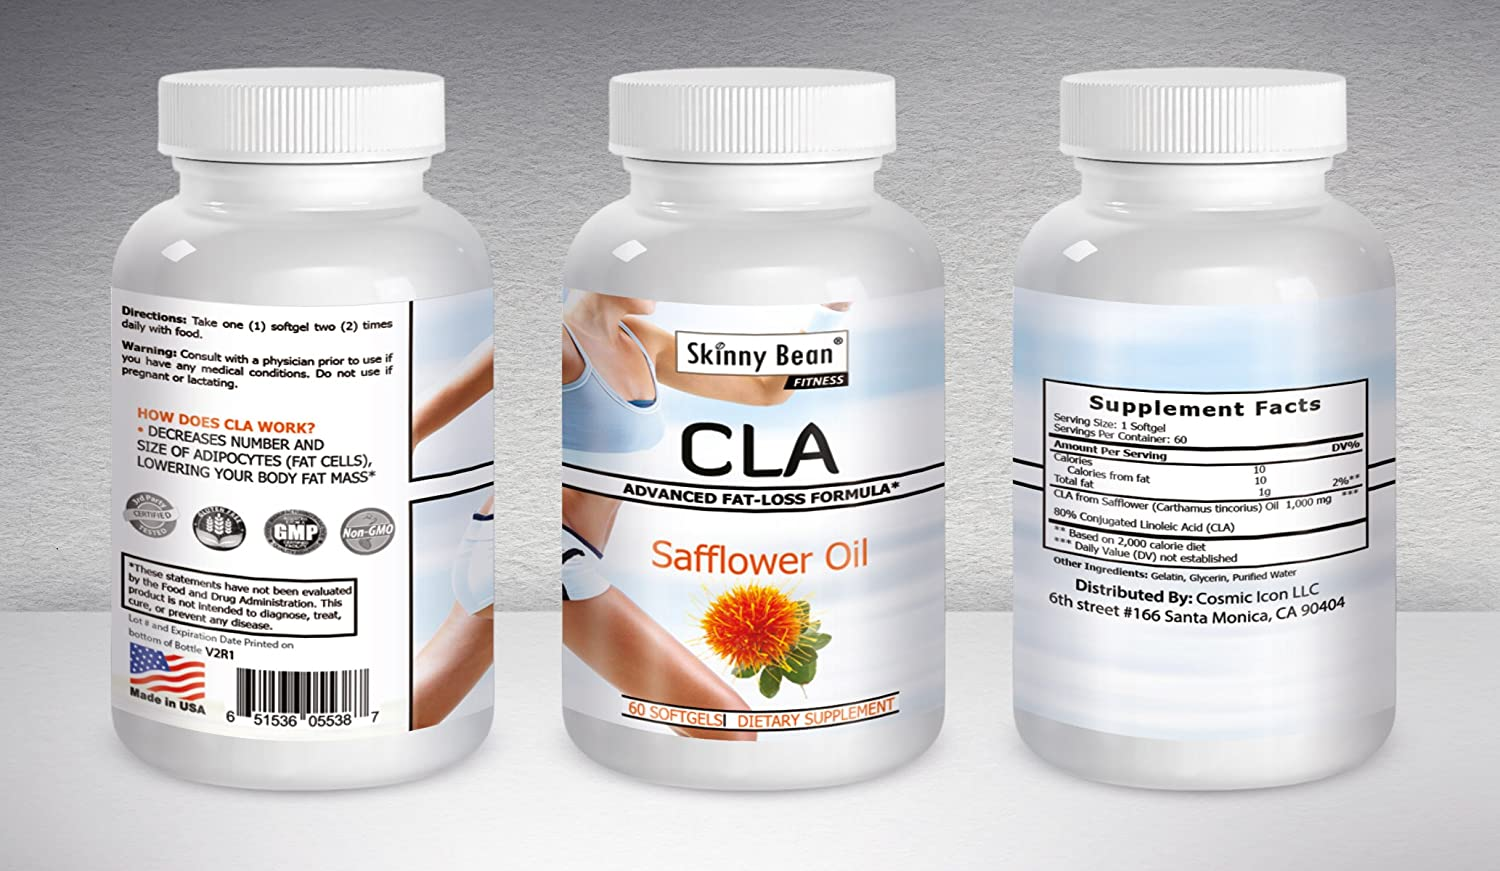 CLA for Women – BMI Lowering Safflower Oil By Skinny Bean